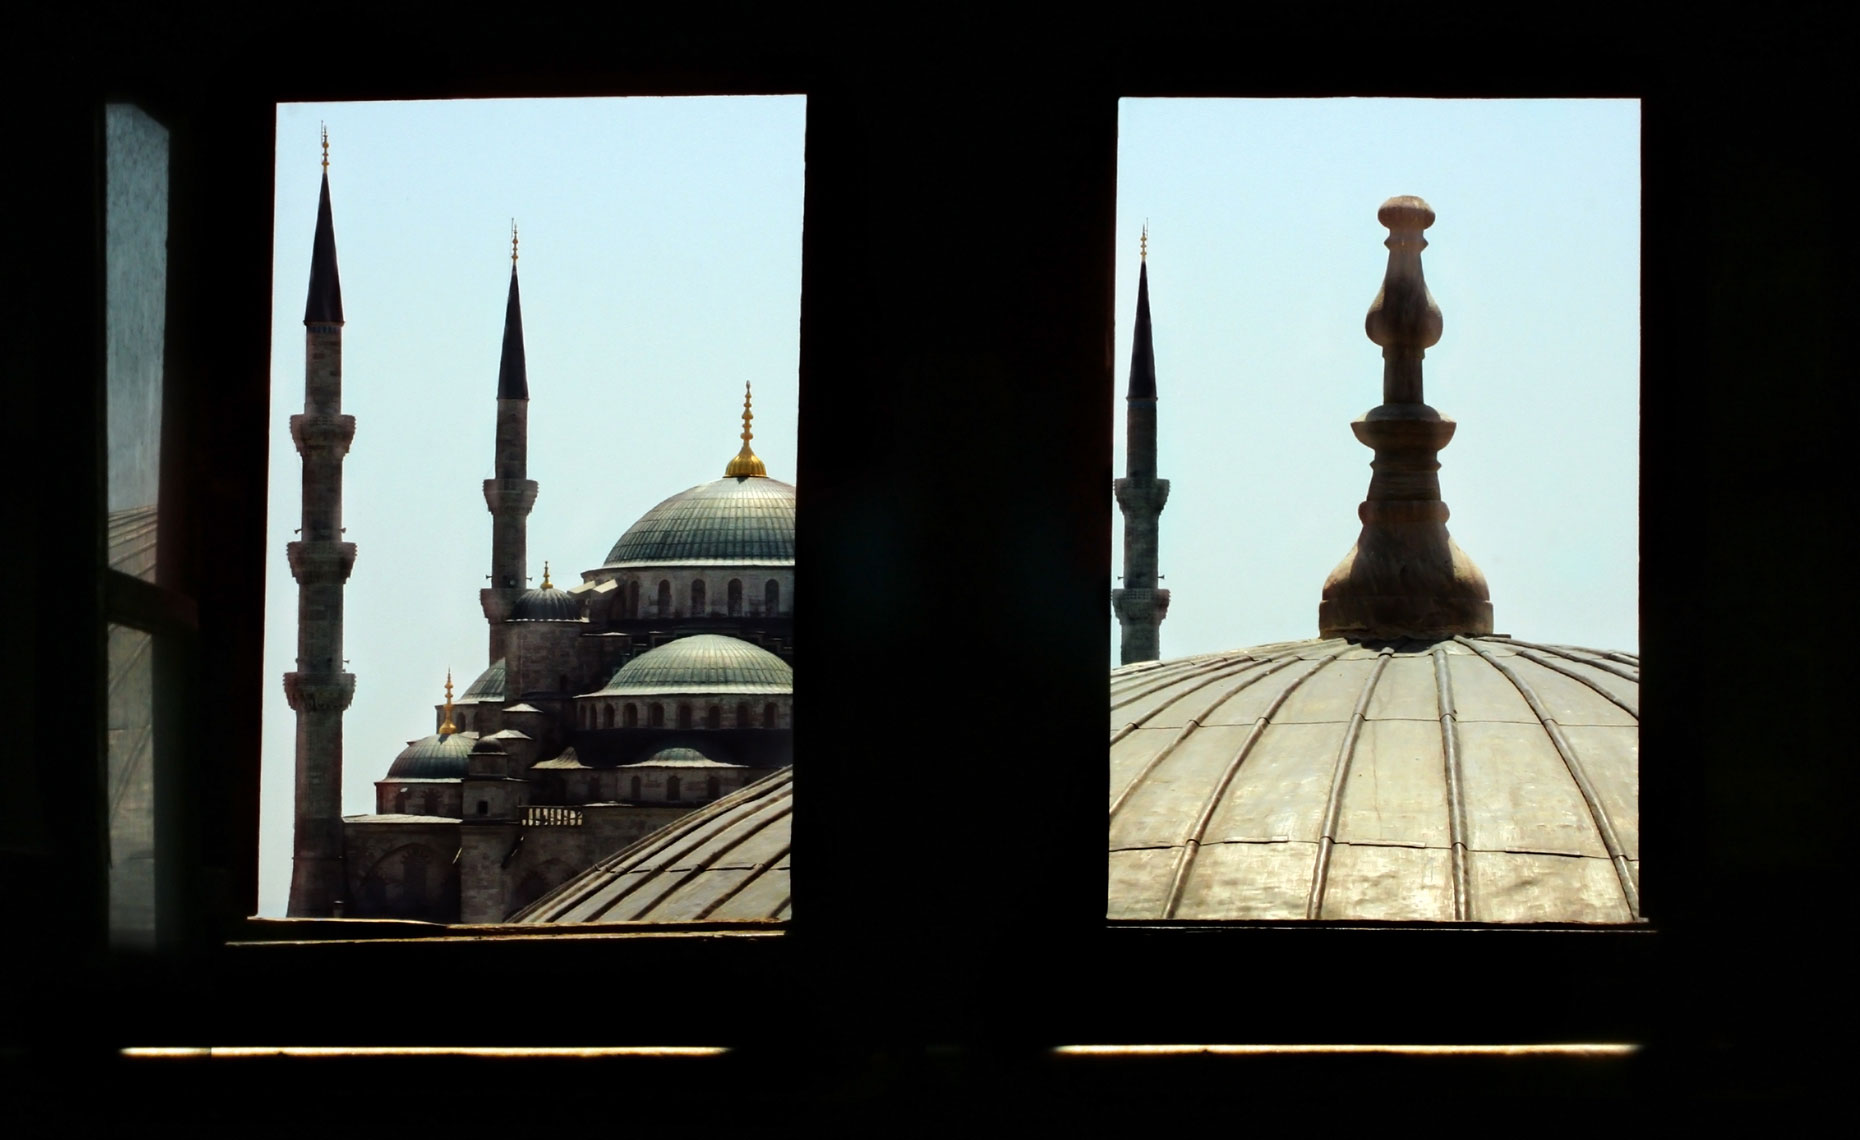 blue-mosque-thru-window.jpg